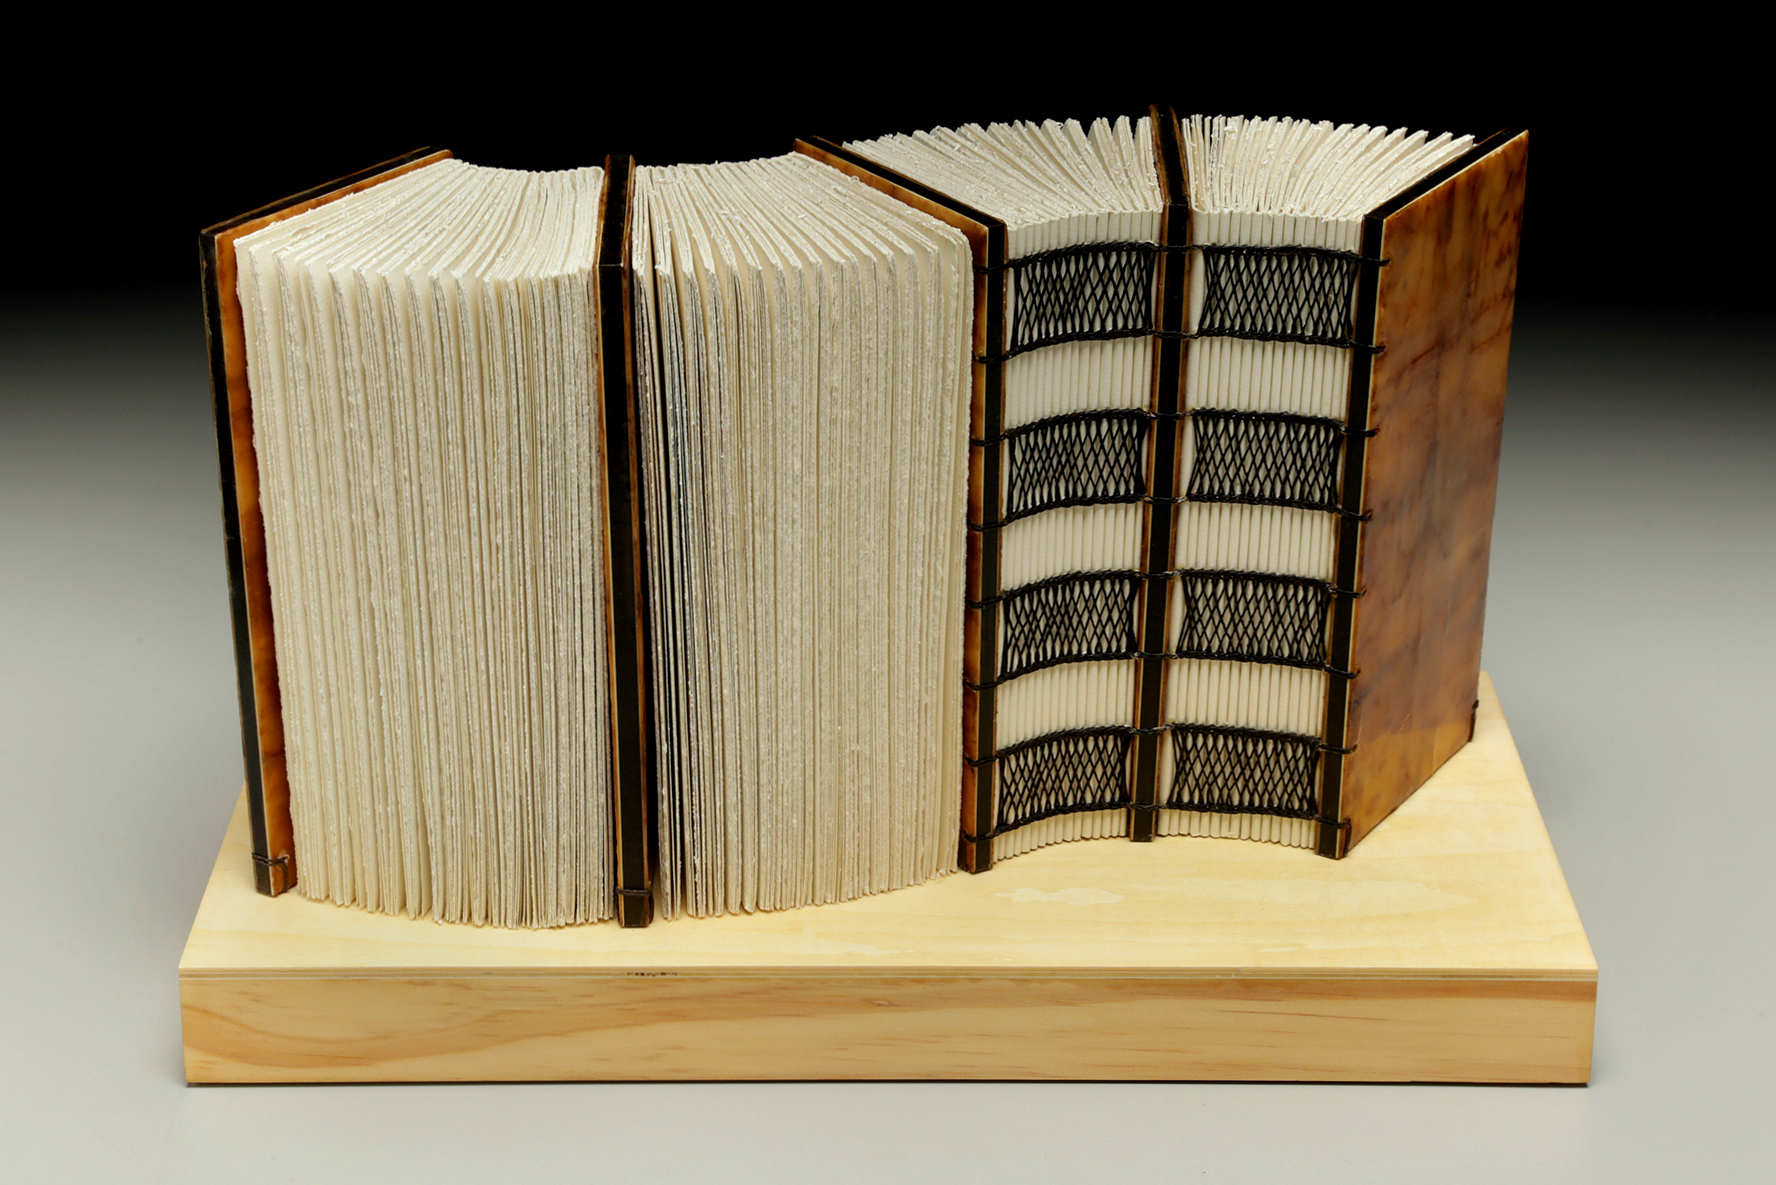 Flow Like Water by Erin Keane : sculptural book : encaustic beeswax covers : 16 x 8 x 9.5 inches